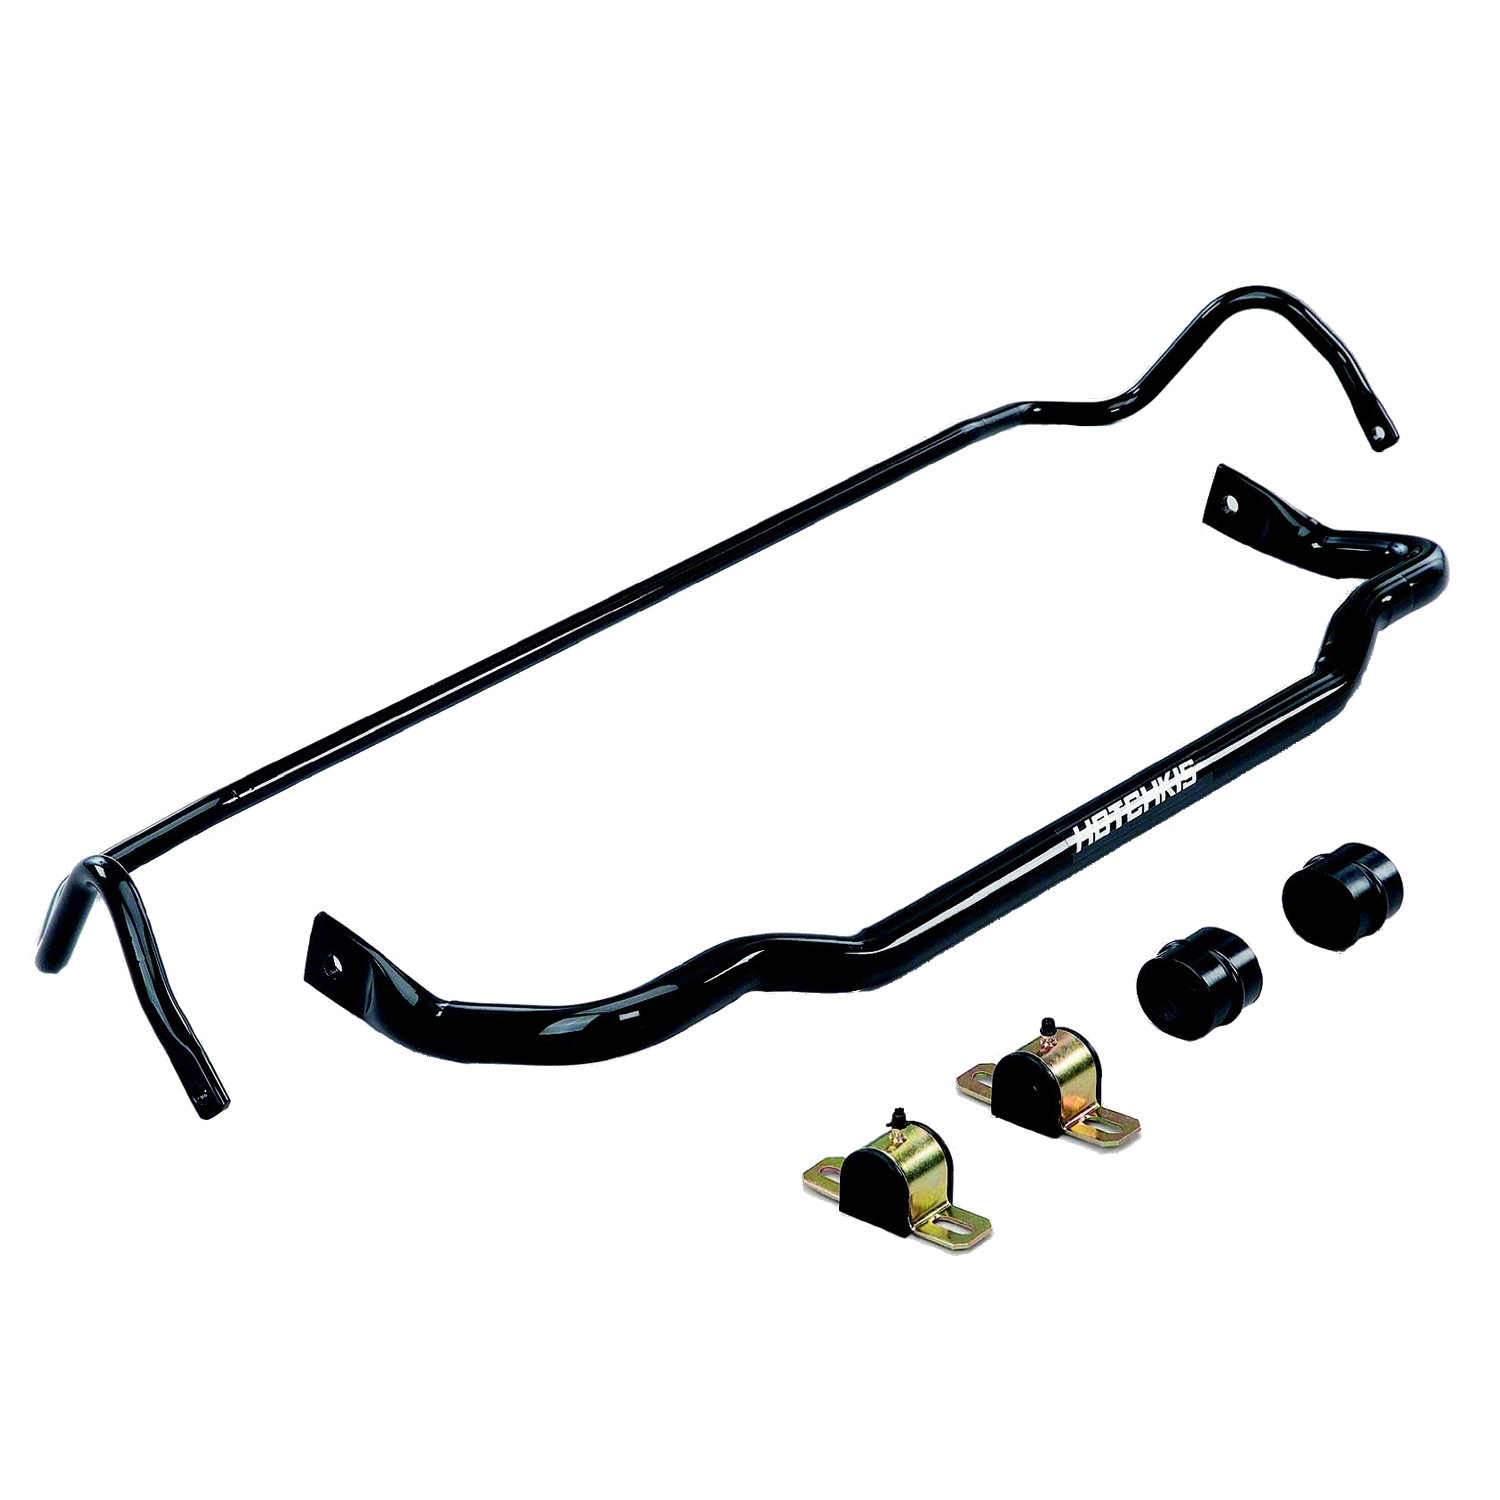 2008+ Challenger Sport Sway Bar Set from Hotchkis Sport Suspension